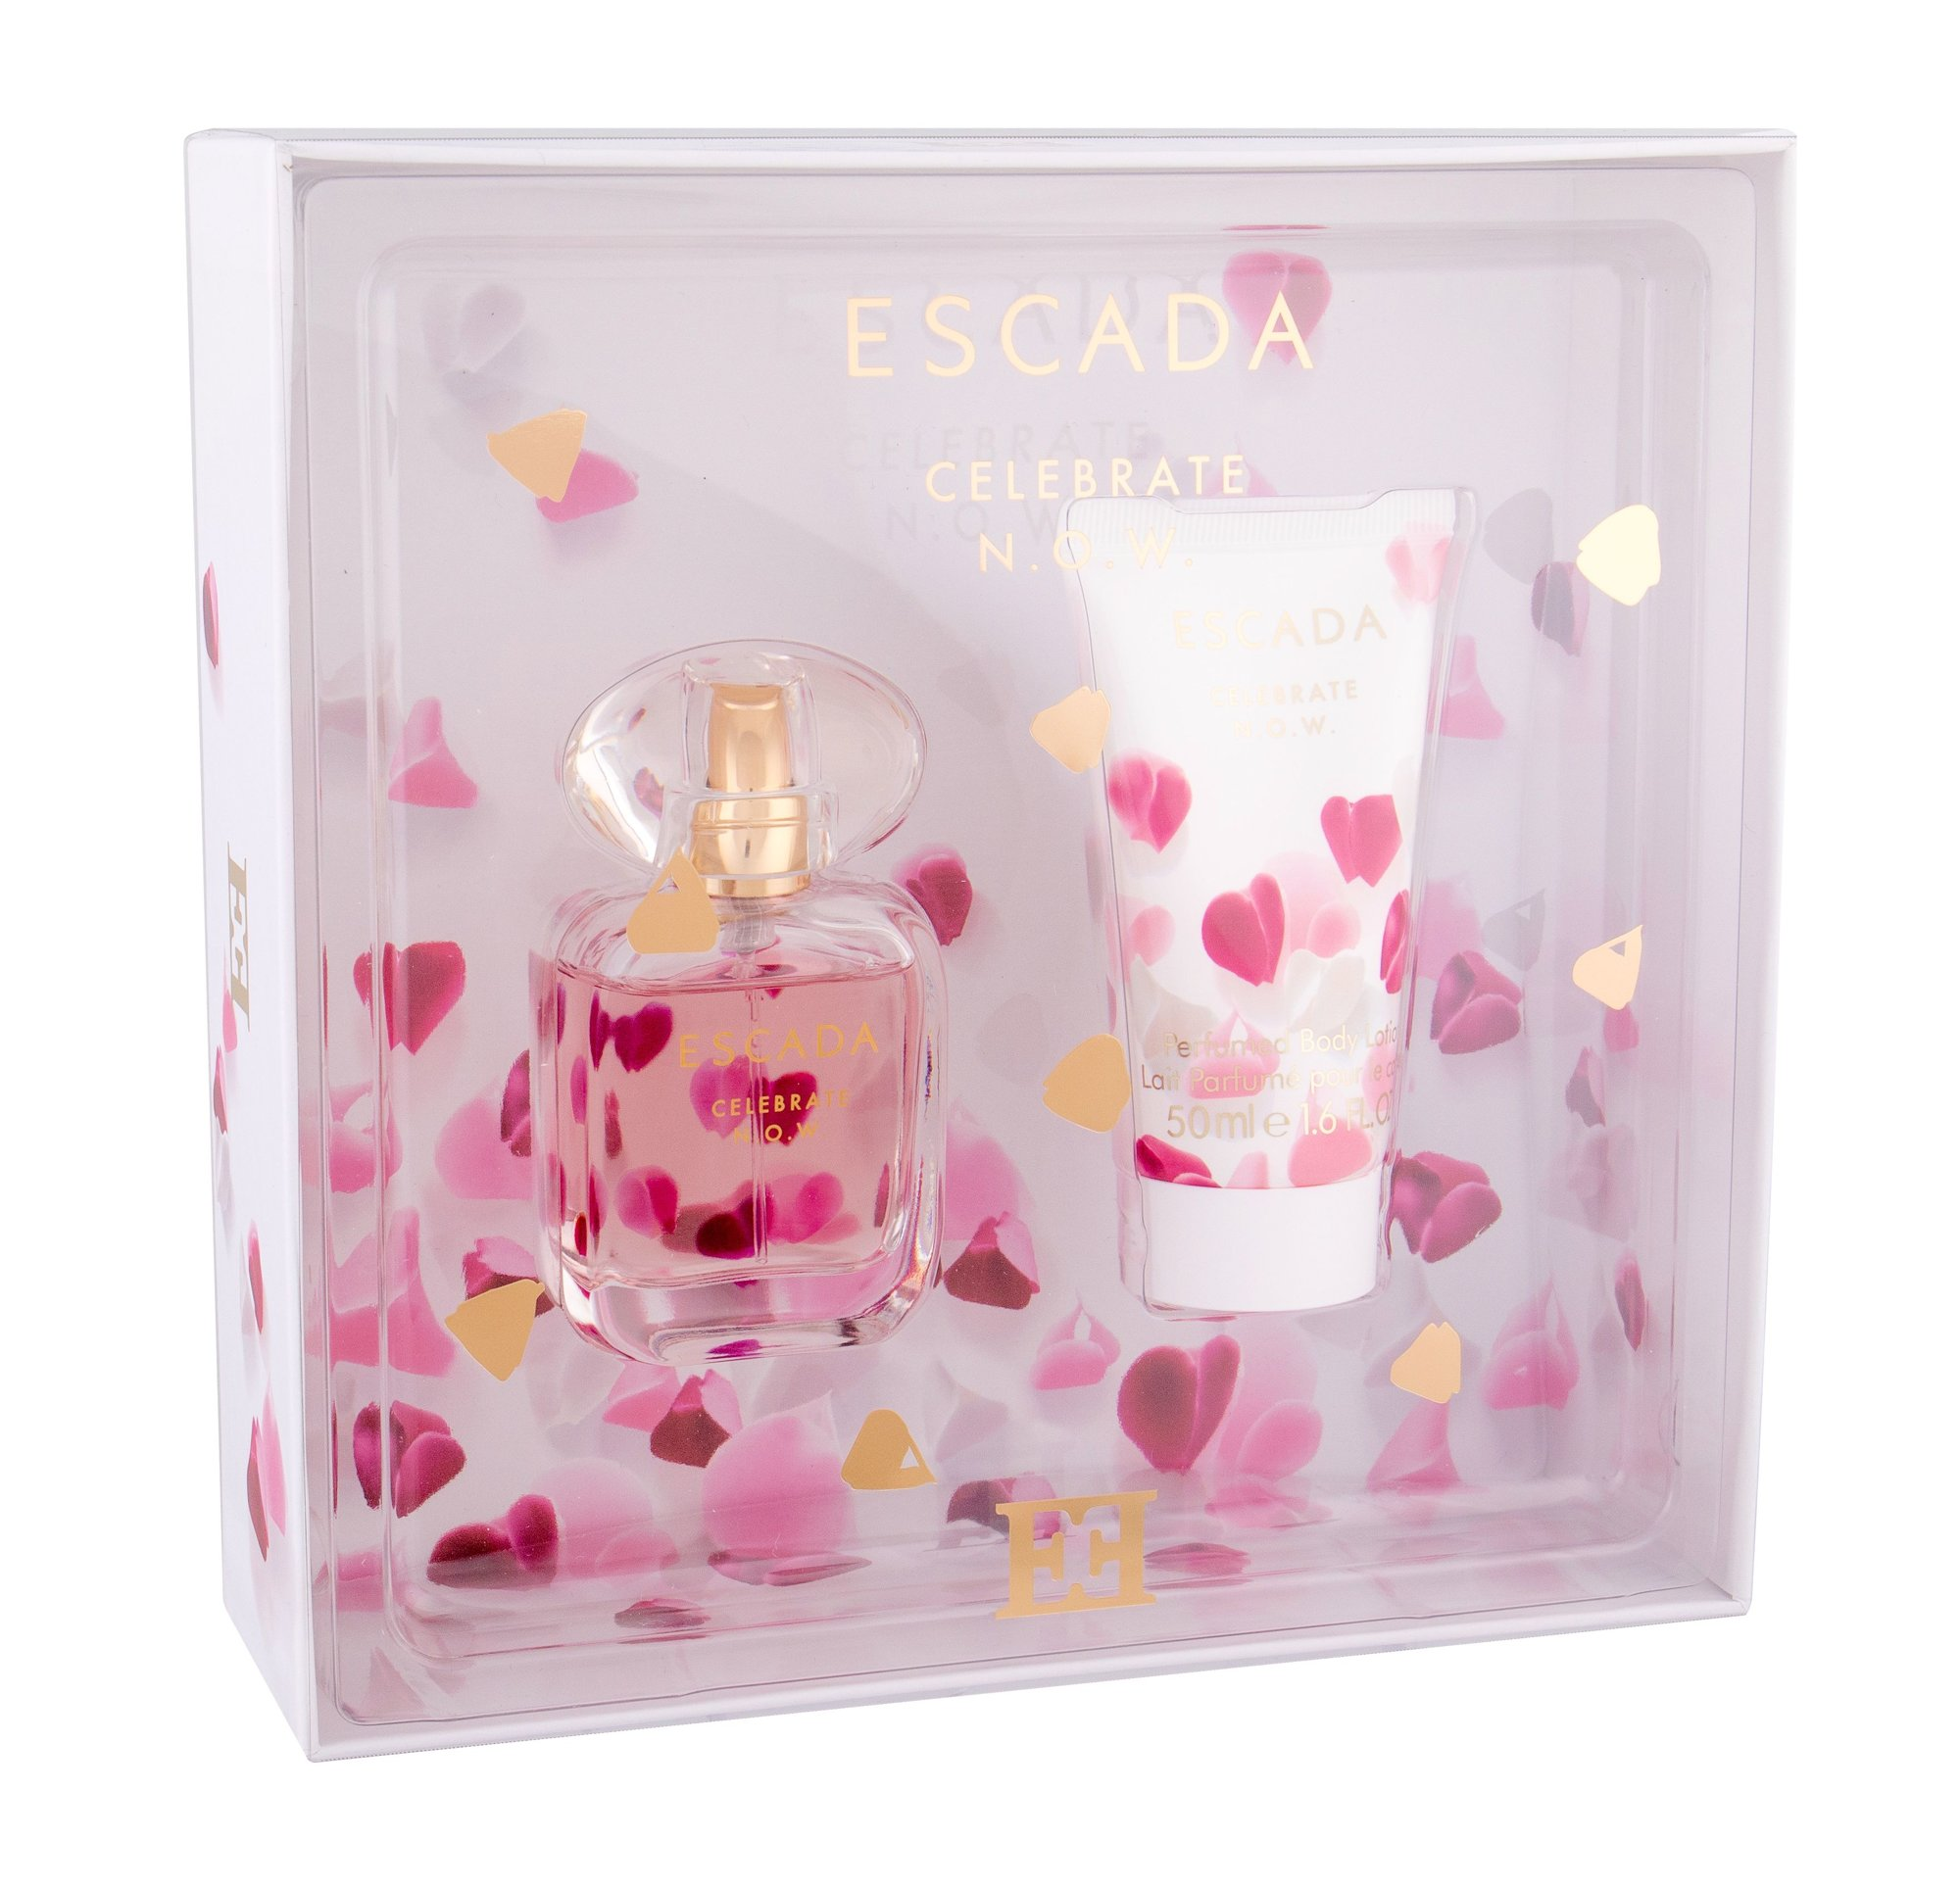 ESCADA Celebrate N.O.W. Eau de Parfum 30ml